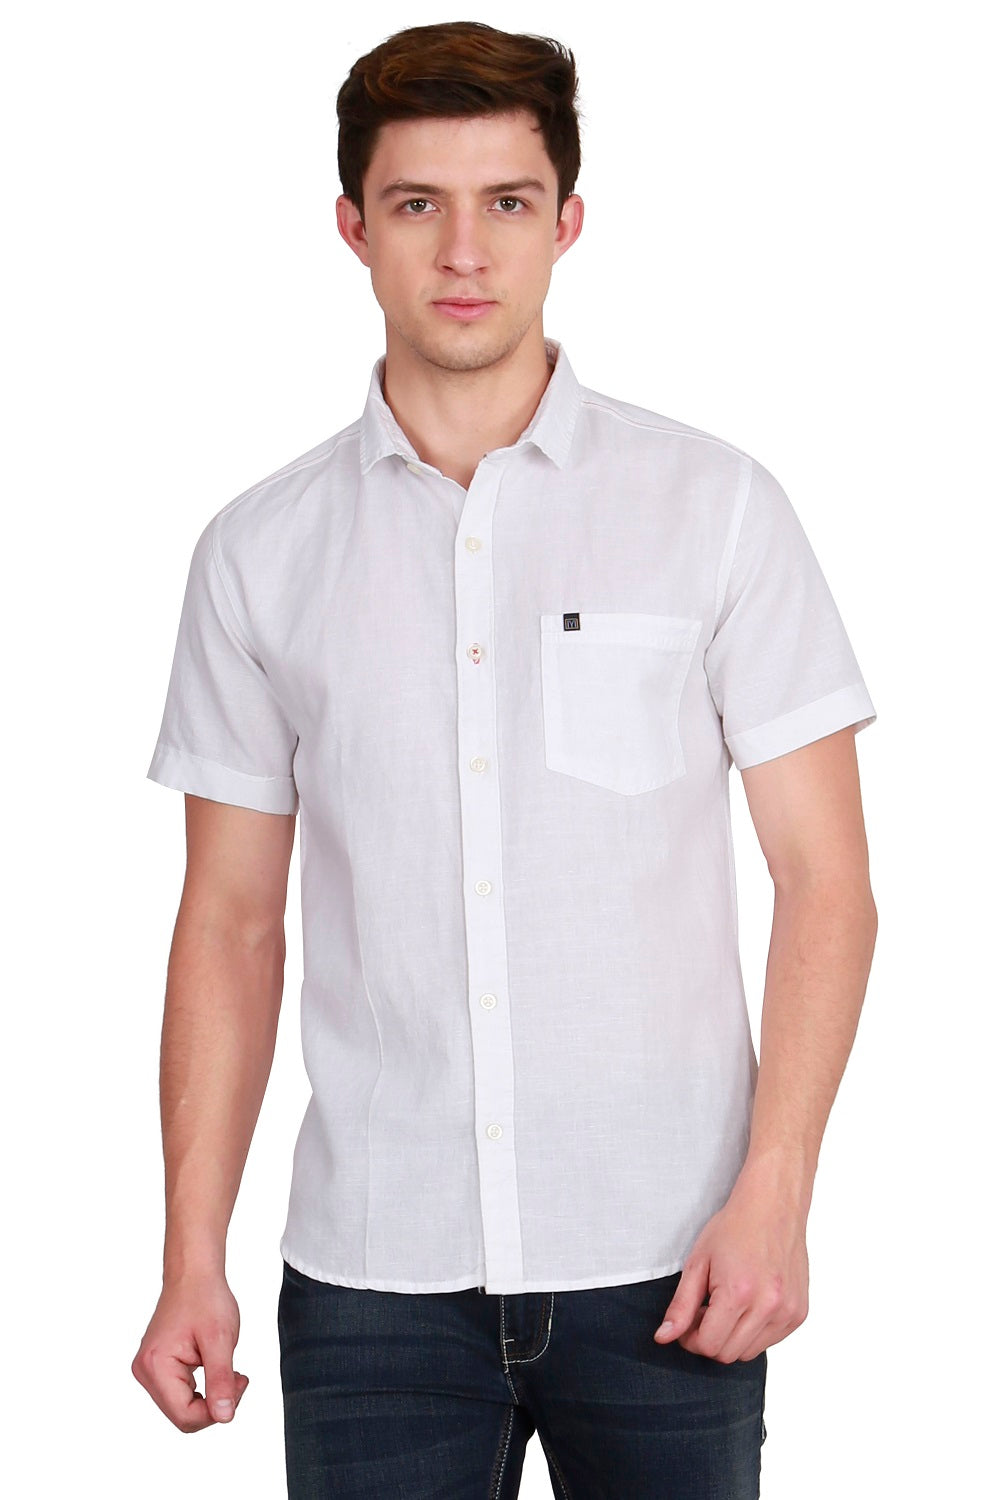 IMYOUNG Men's Solid White Cotton Linen Casual Shirt